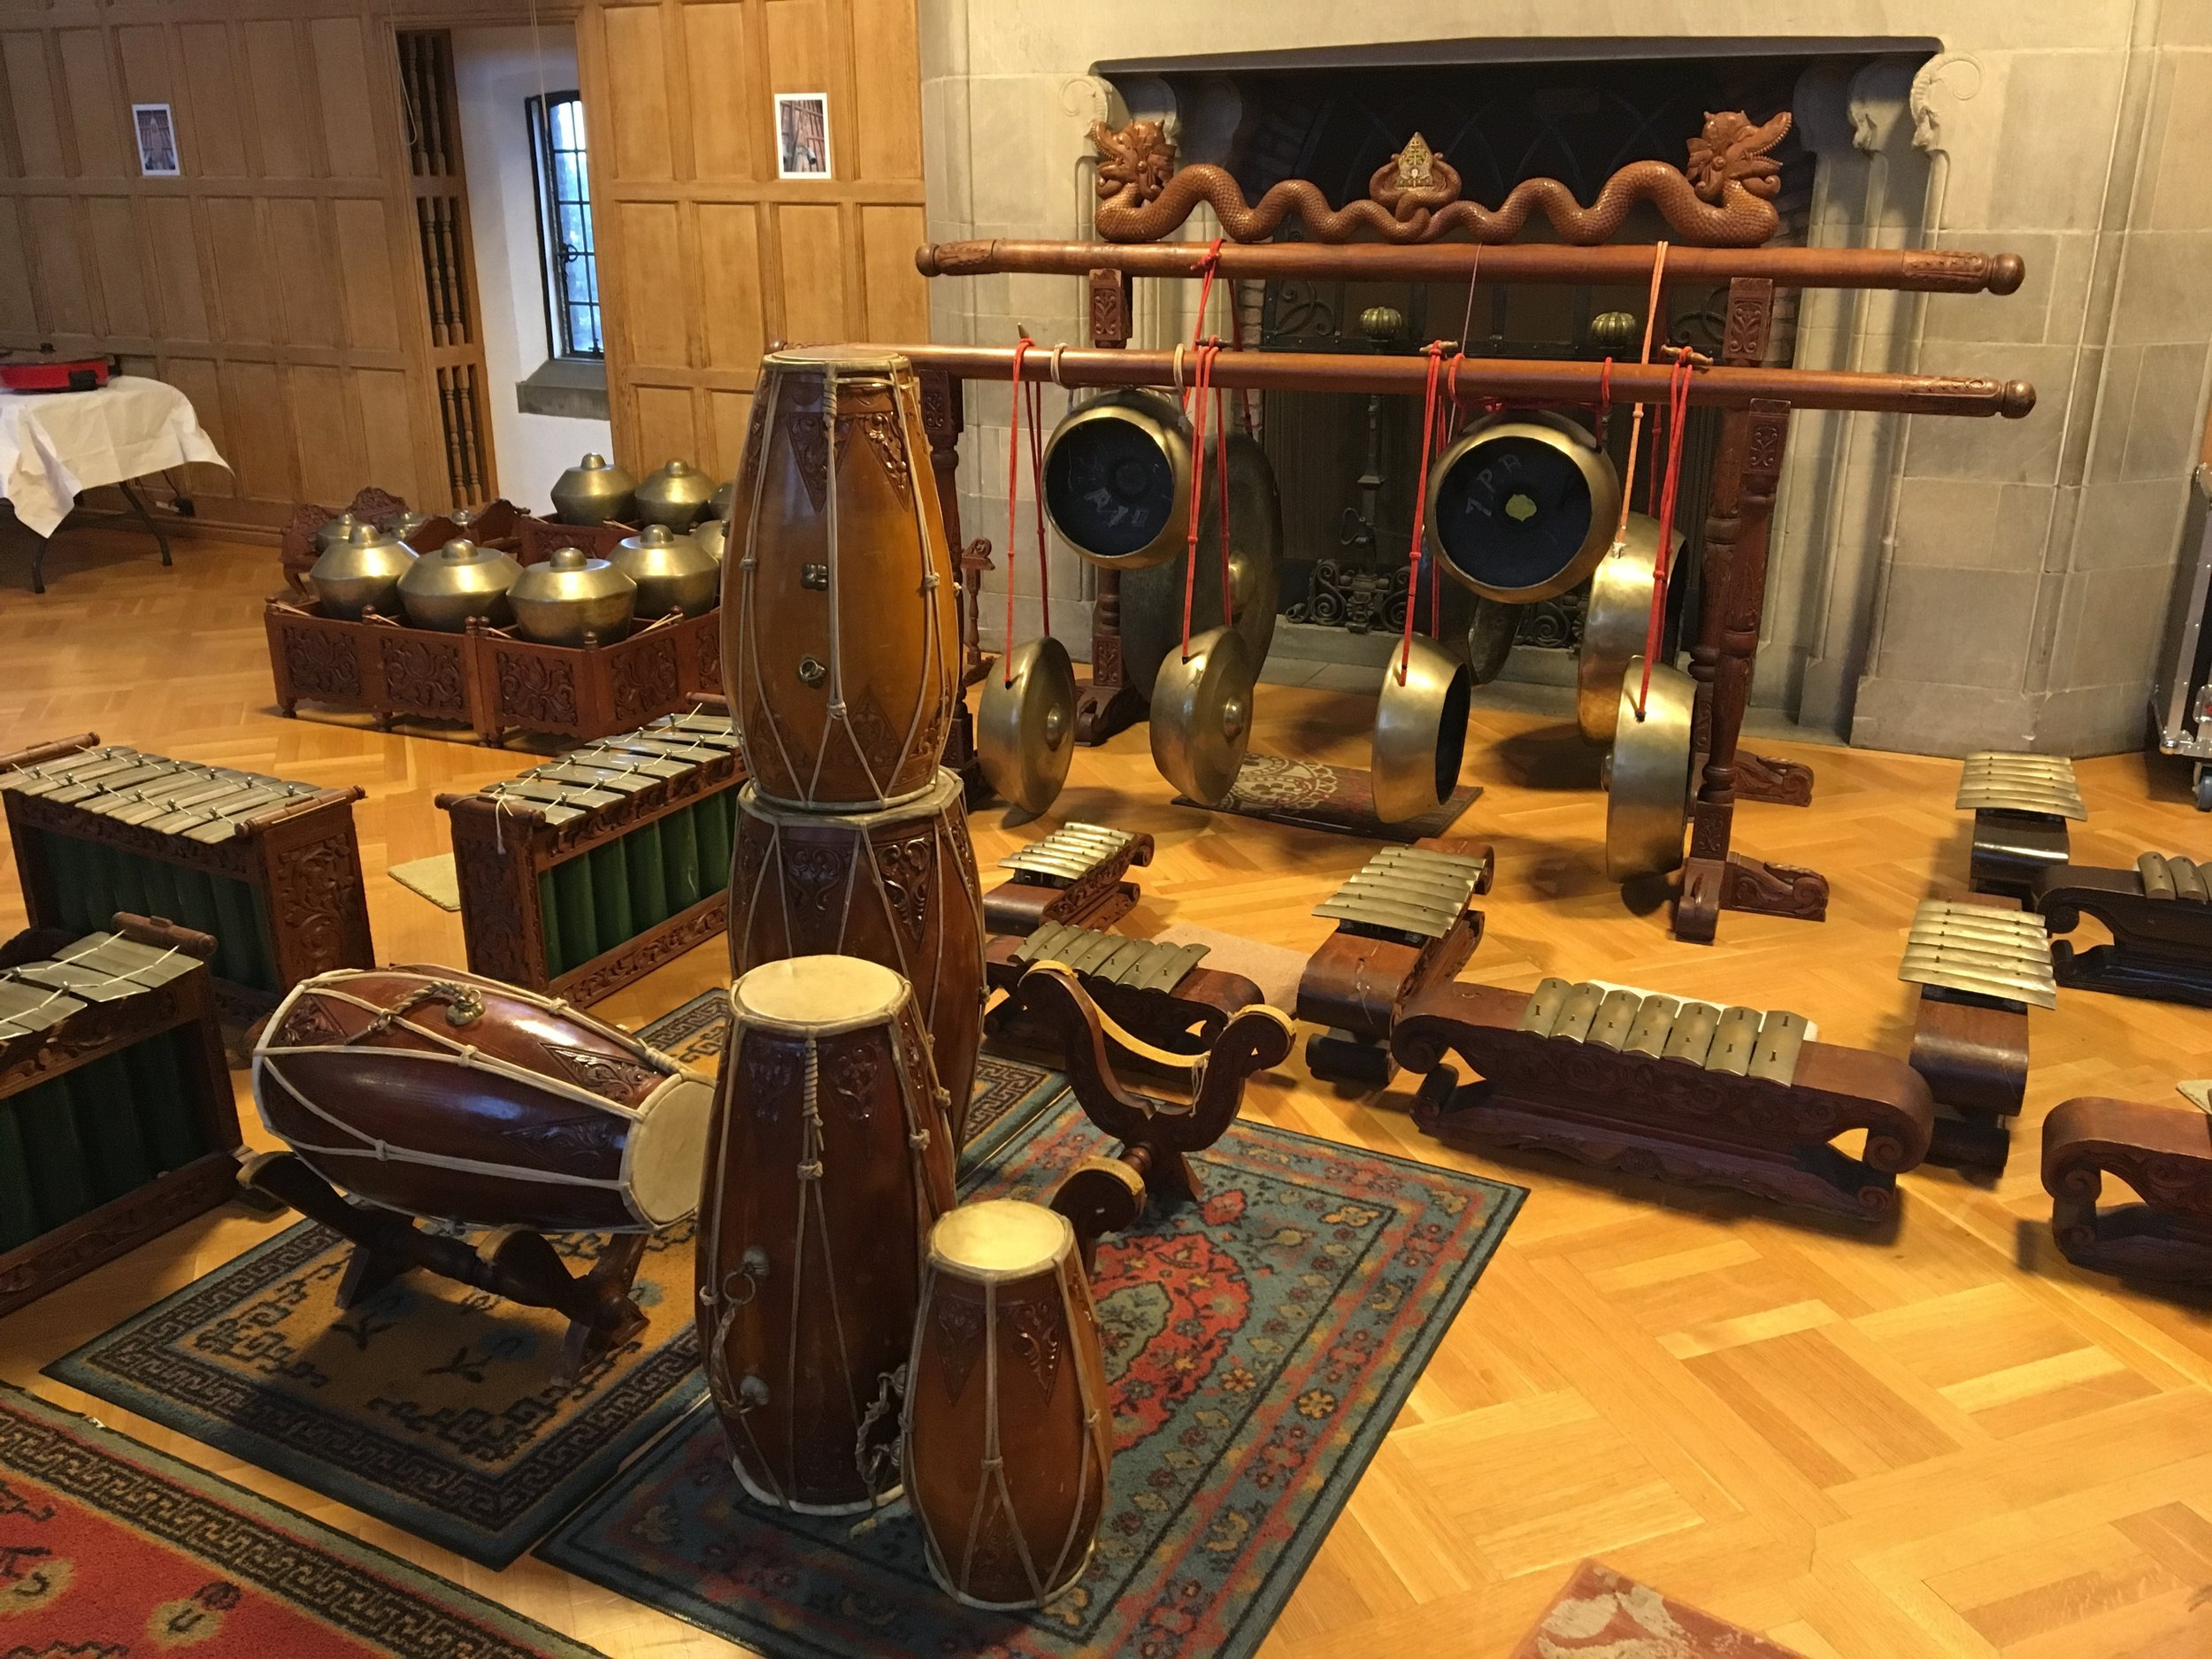 Gamelan, classical music traditions of Bali and Java, is a extremely popular musical form throughout the world, and one of the most distinctive and accessible cultural traditions of Indonesia.